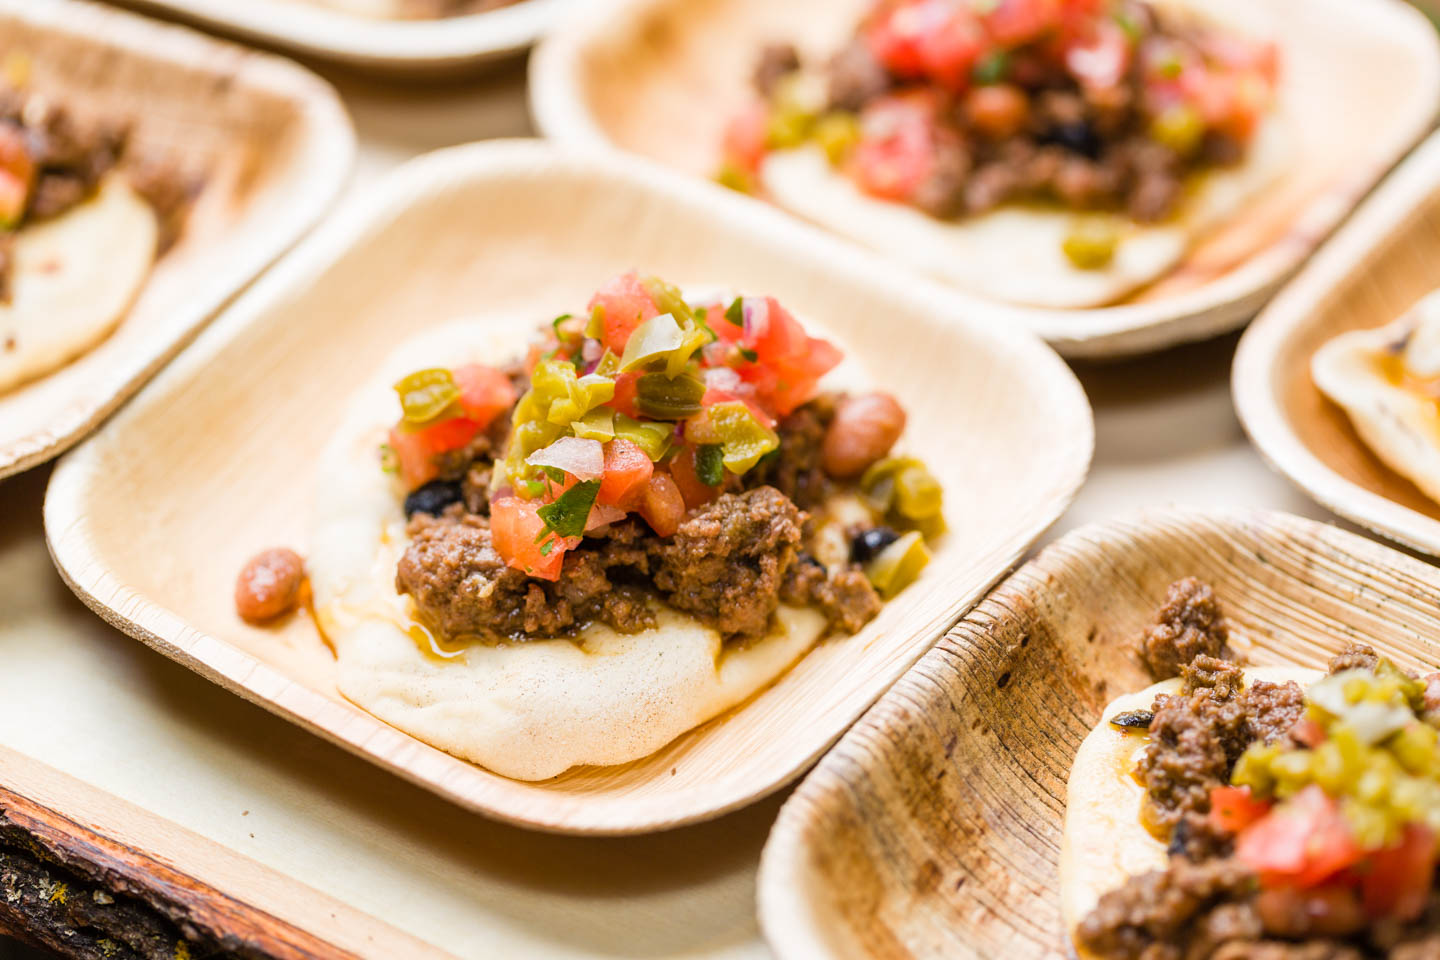 Navajo tacos by Lux Catering & Events